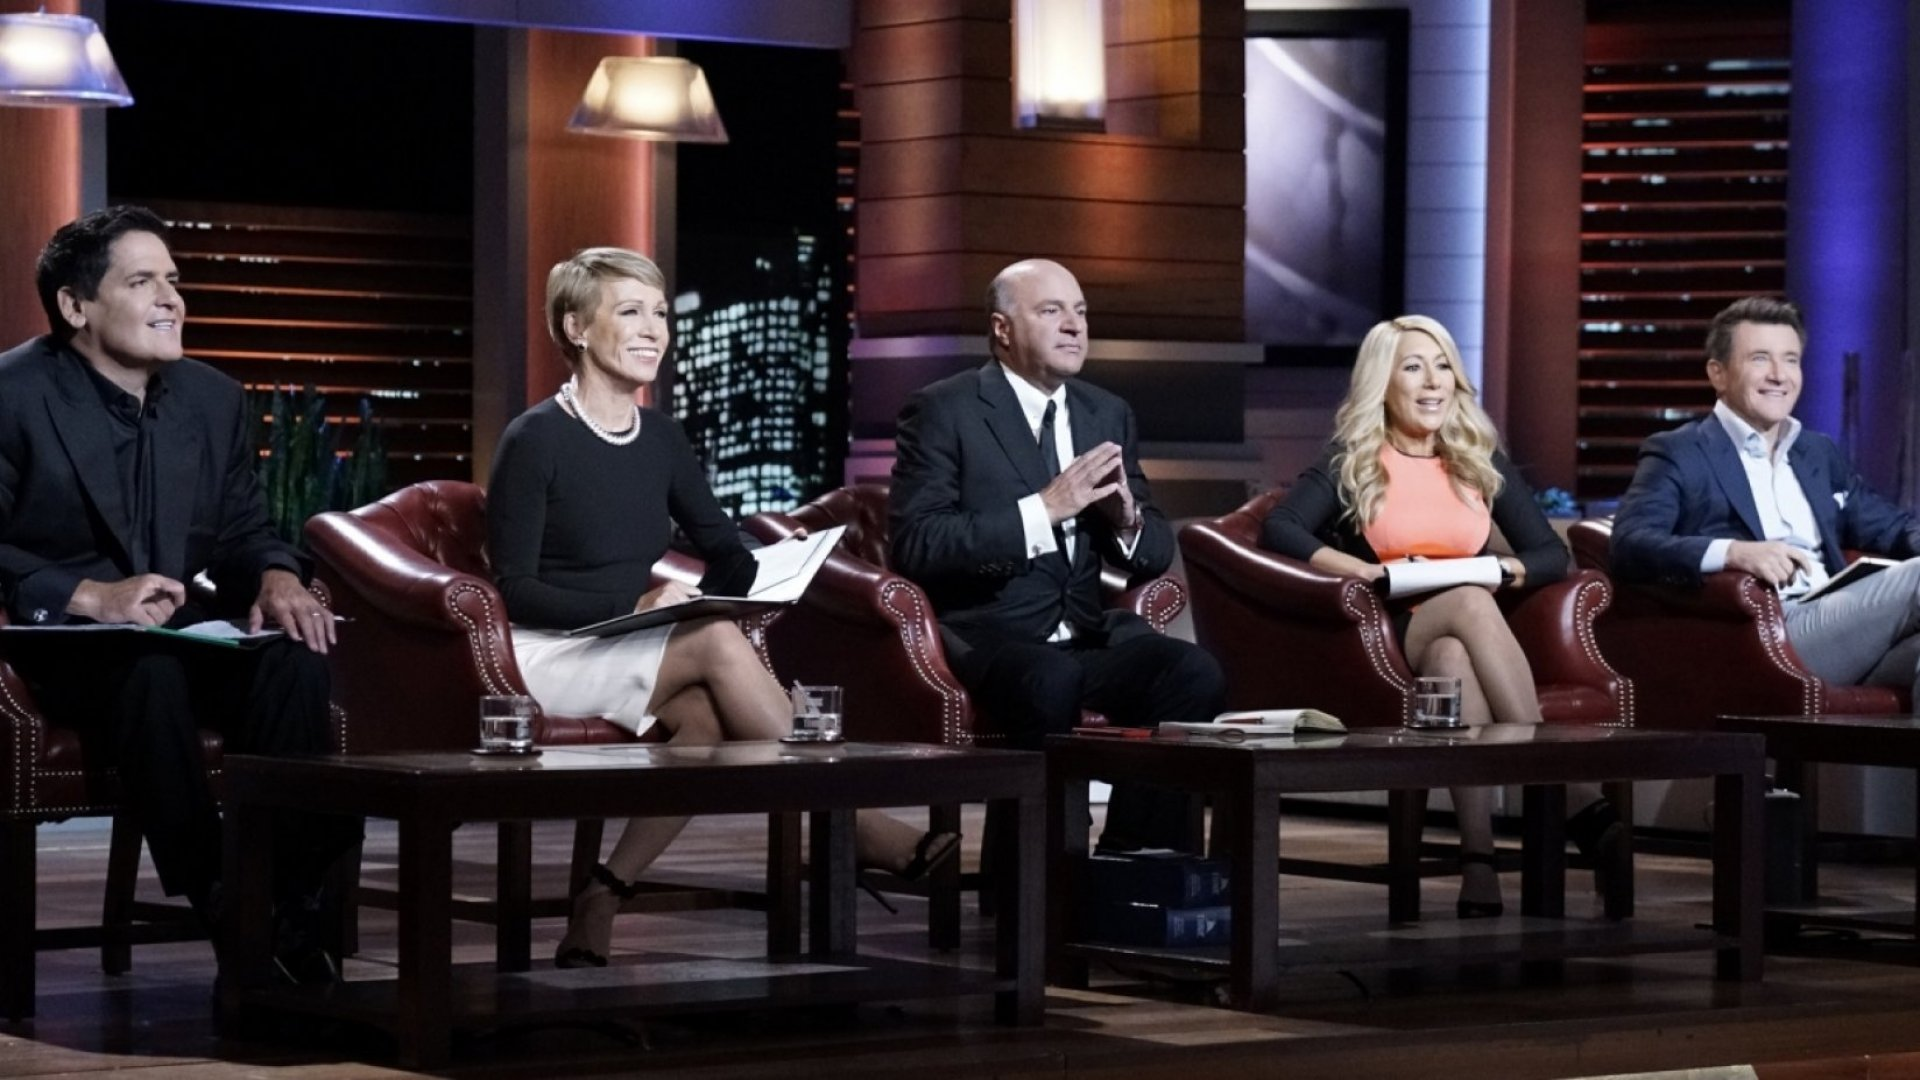 'Shark Tank' Officially Offers to Invest $100 Million. Here Are Its 8 Biggest On-Air Deals